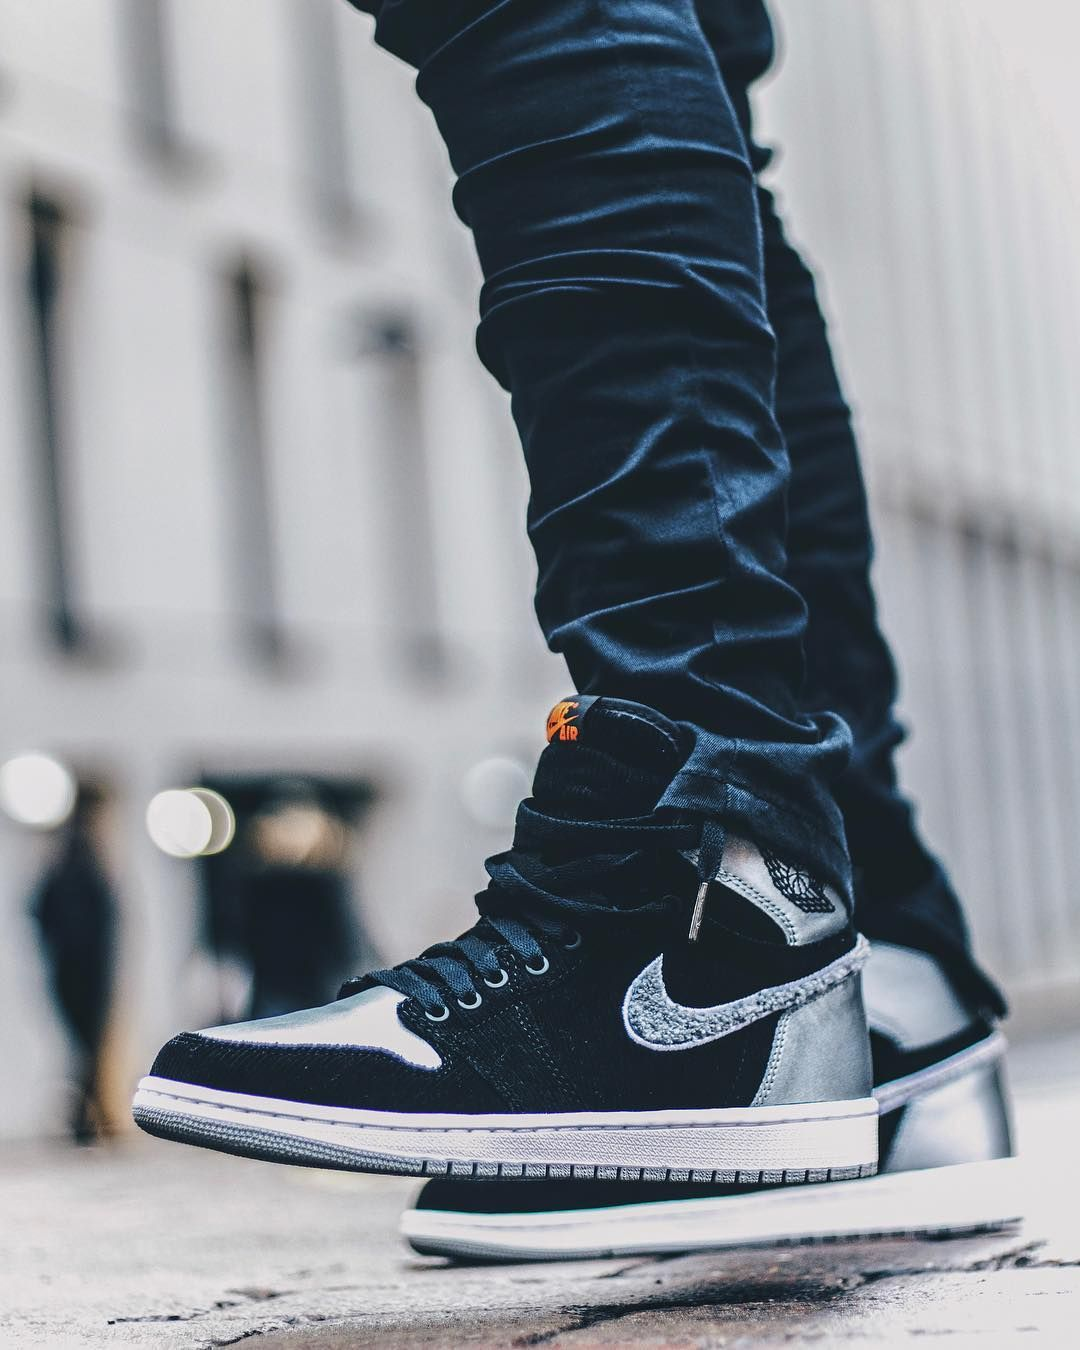 Pin by Macharia on fgj in 2019 Sneakers nike, Sneakers, Shoes    Pin by Macharia on fgj 2019   title=          Sneakers nike, Sneakers, Shoes